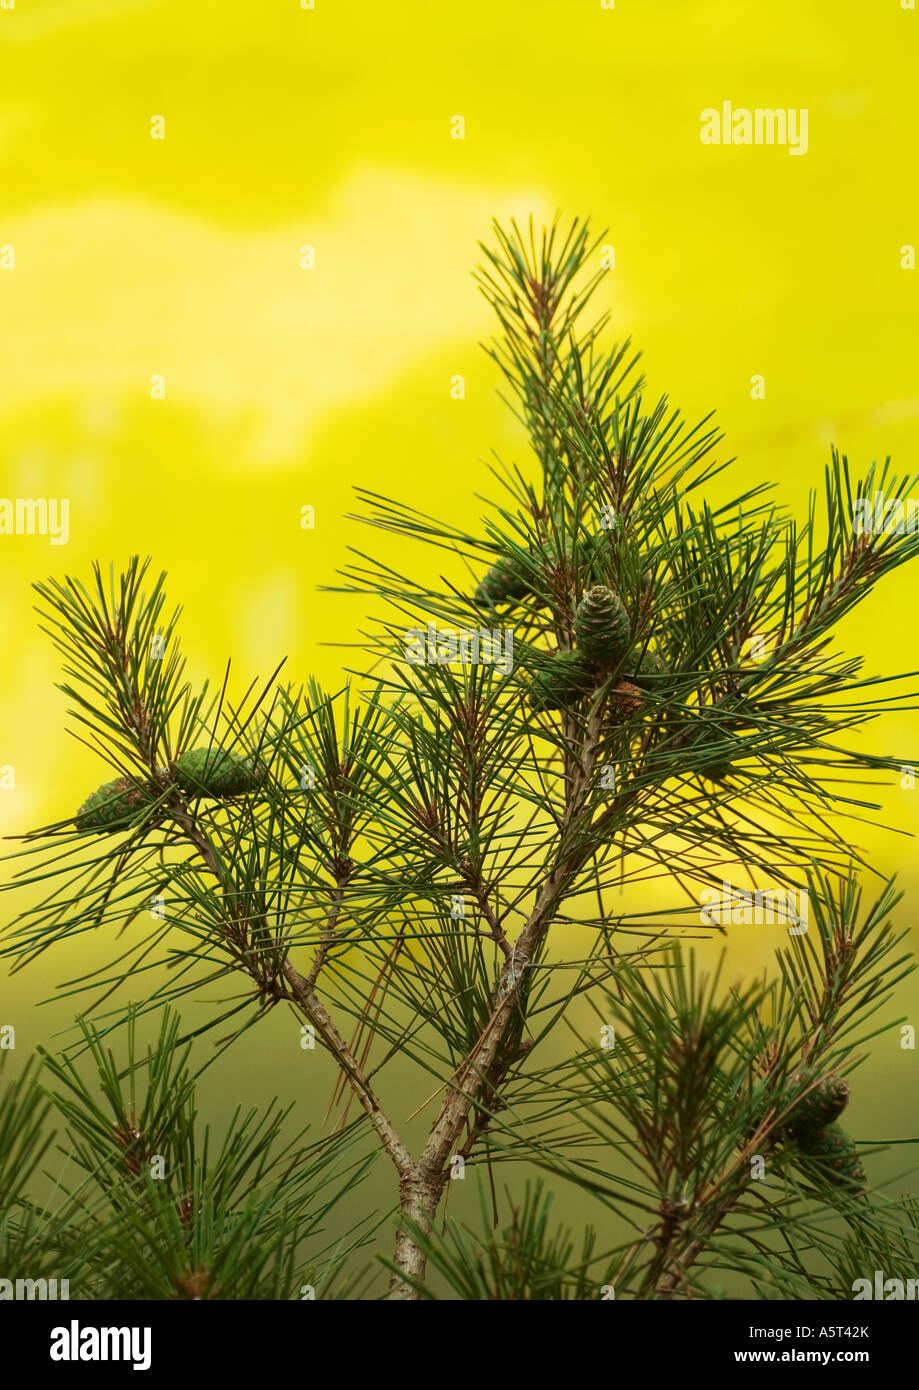 Pine branch - Stock Image